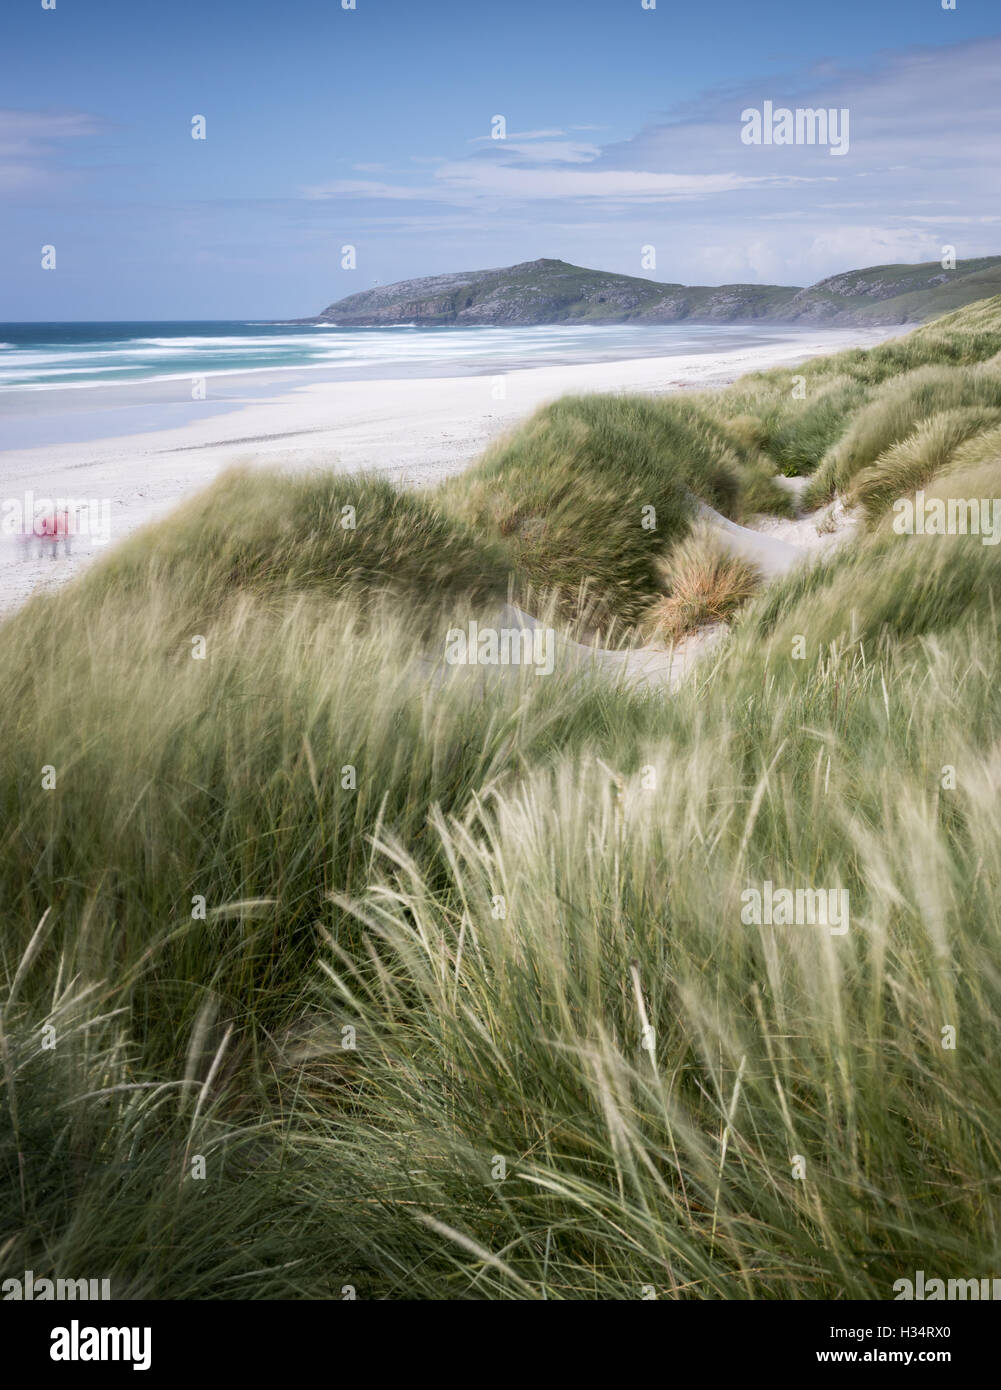 Windswept grasses at Traigh Eais beach, Isle of Barra, Outer Hebrides, Scotland - Stock Image